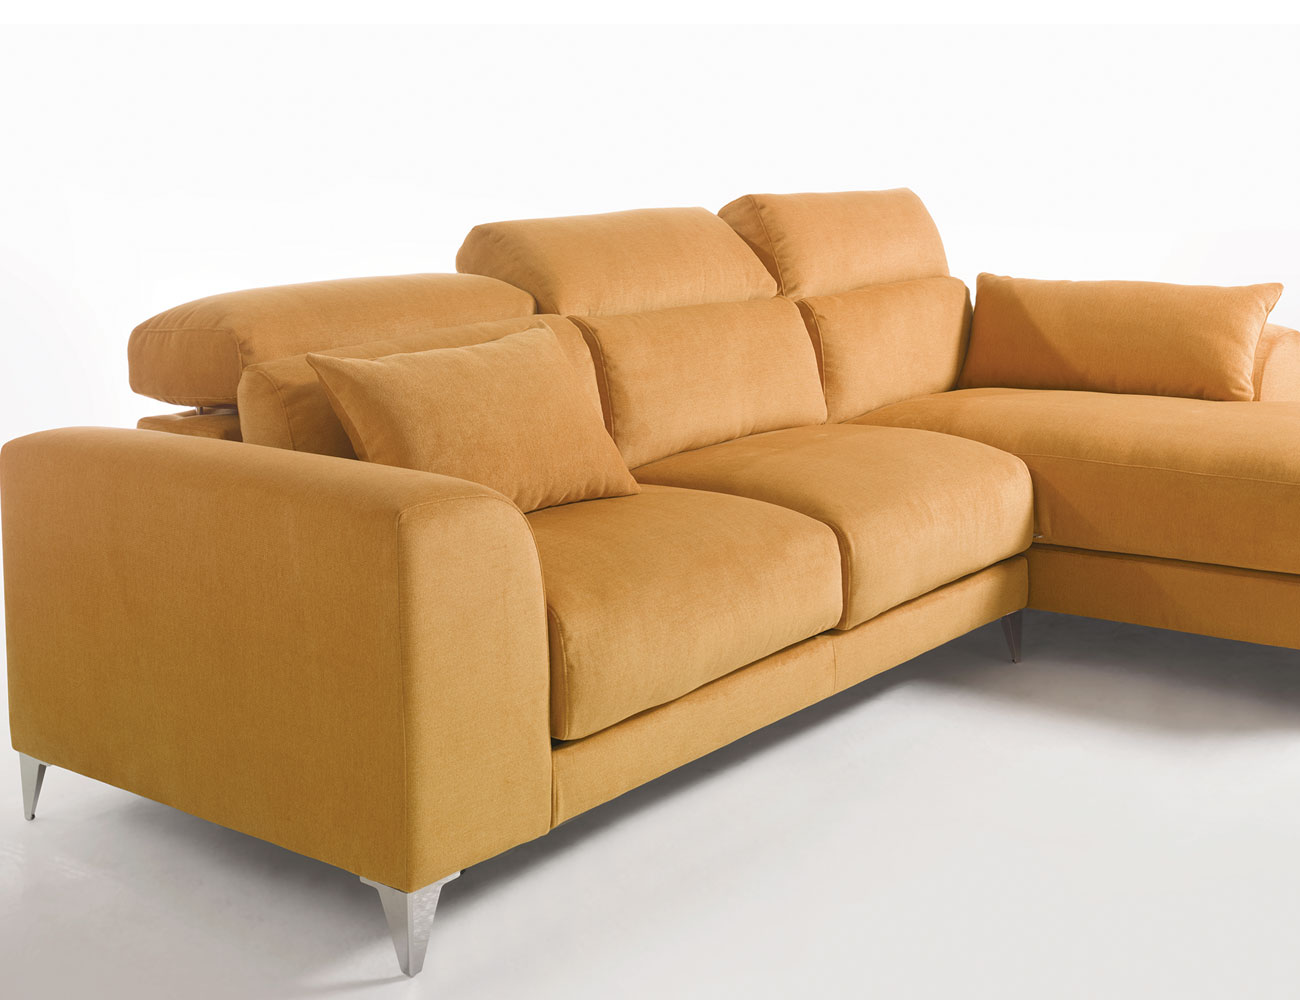 Sofa chaiselongue gran lujo decorativo patas altas amarillo 224